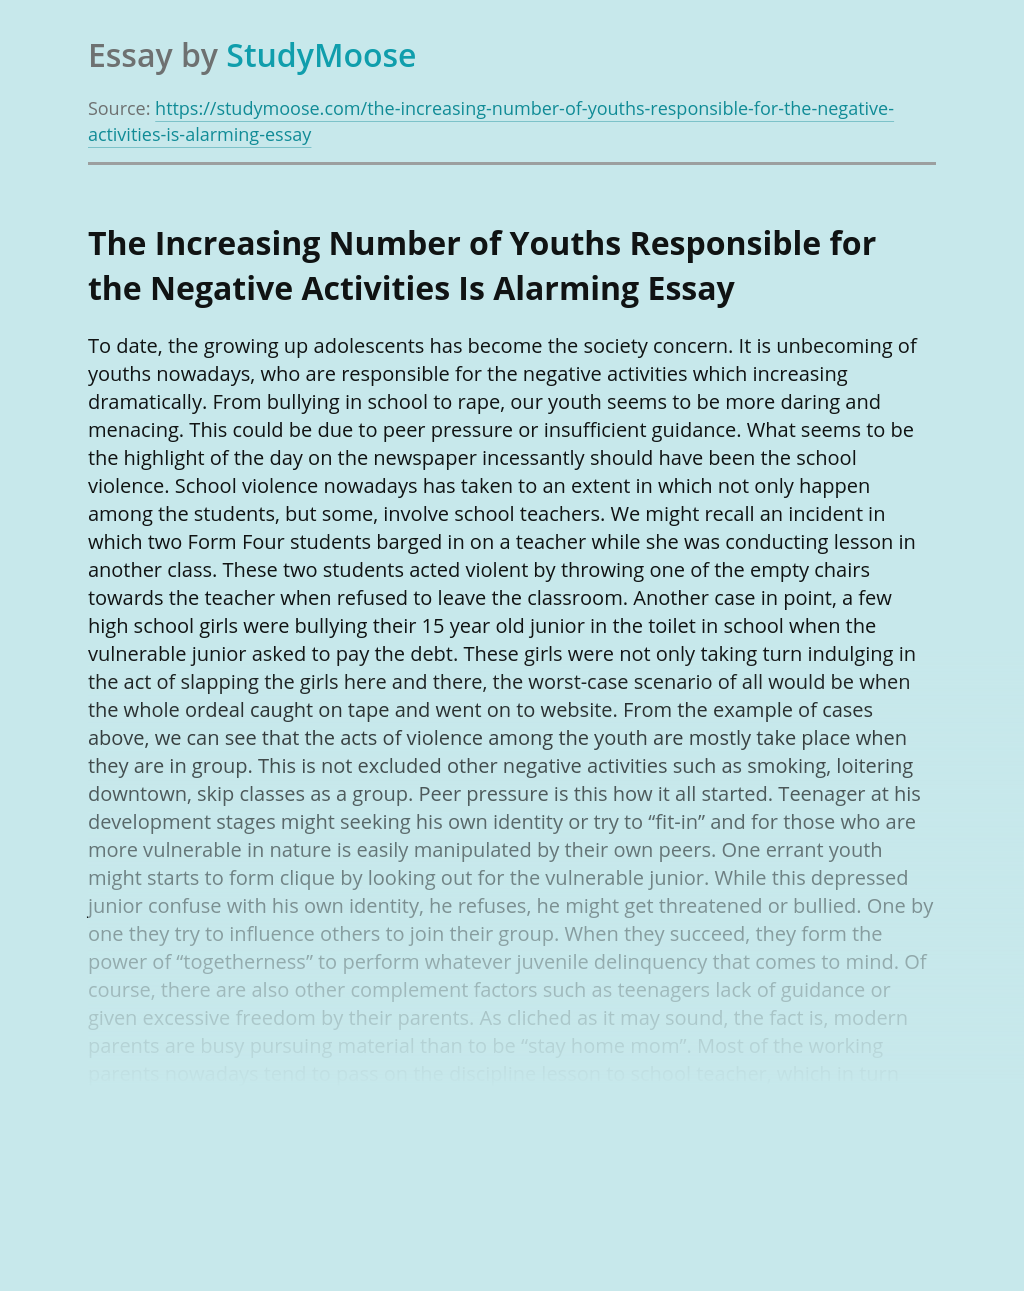 The Growing Up Adolescents Has Become The Society Concern